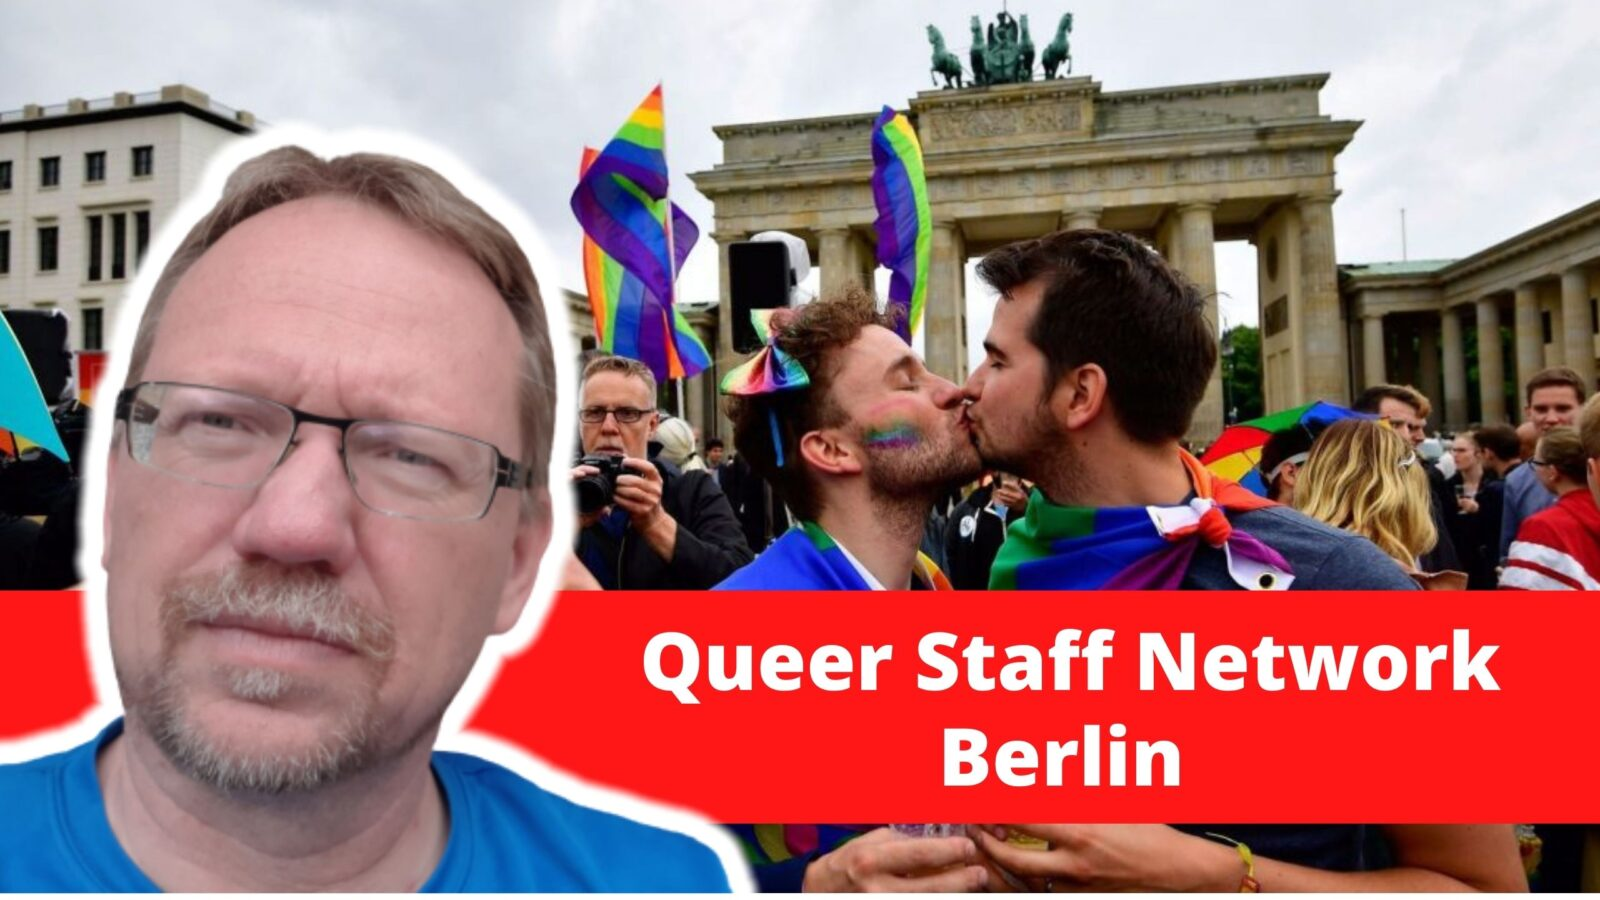 Queer staff network Berlin Dr Franz Markus Loew LGBTQ professionals of Employer Corporate ERG Employee Resource Groups OutBuro (1)